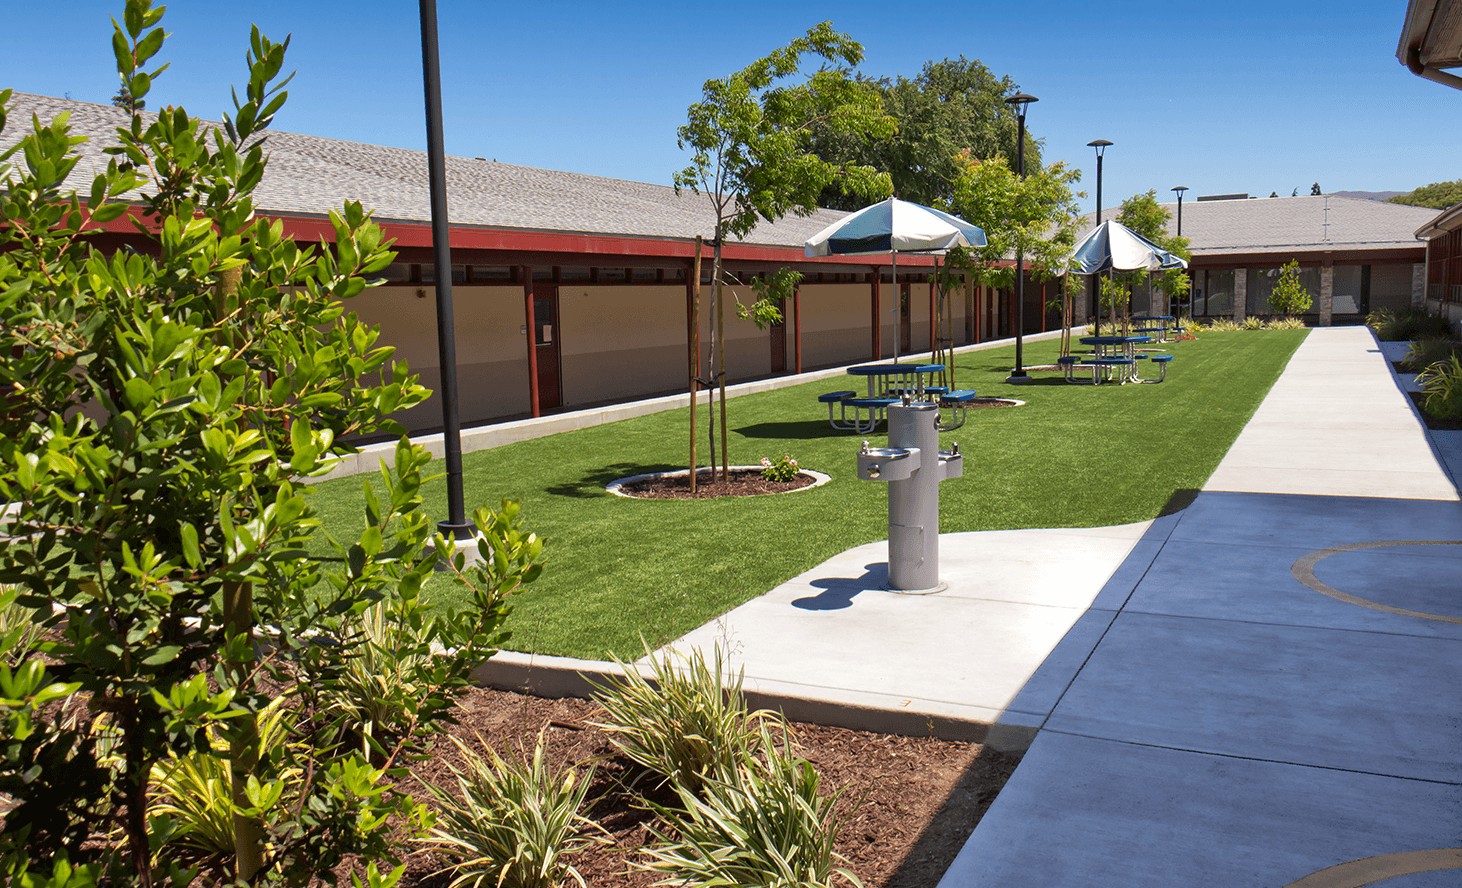 School Facilities | Challenger School - Berryessa | Private School In San Jose, California